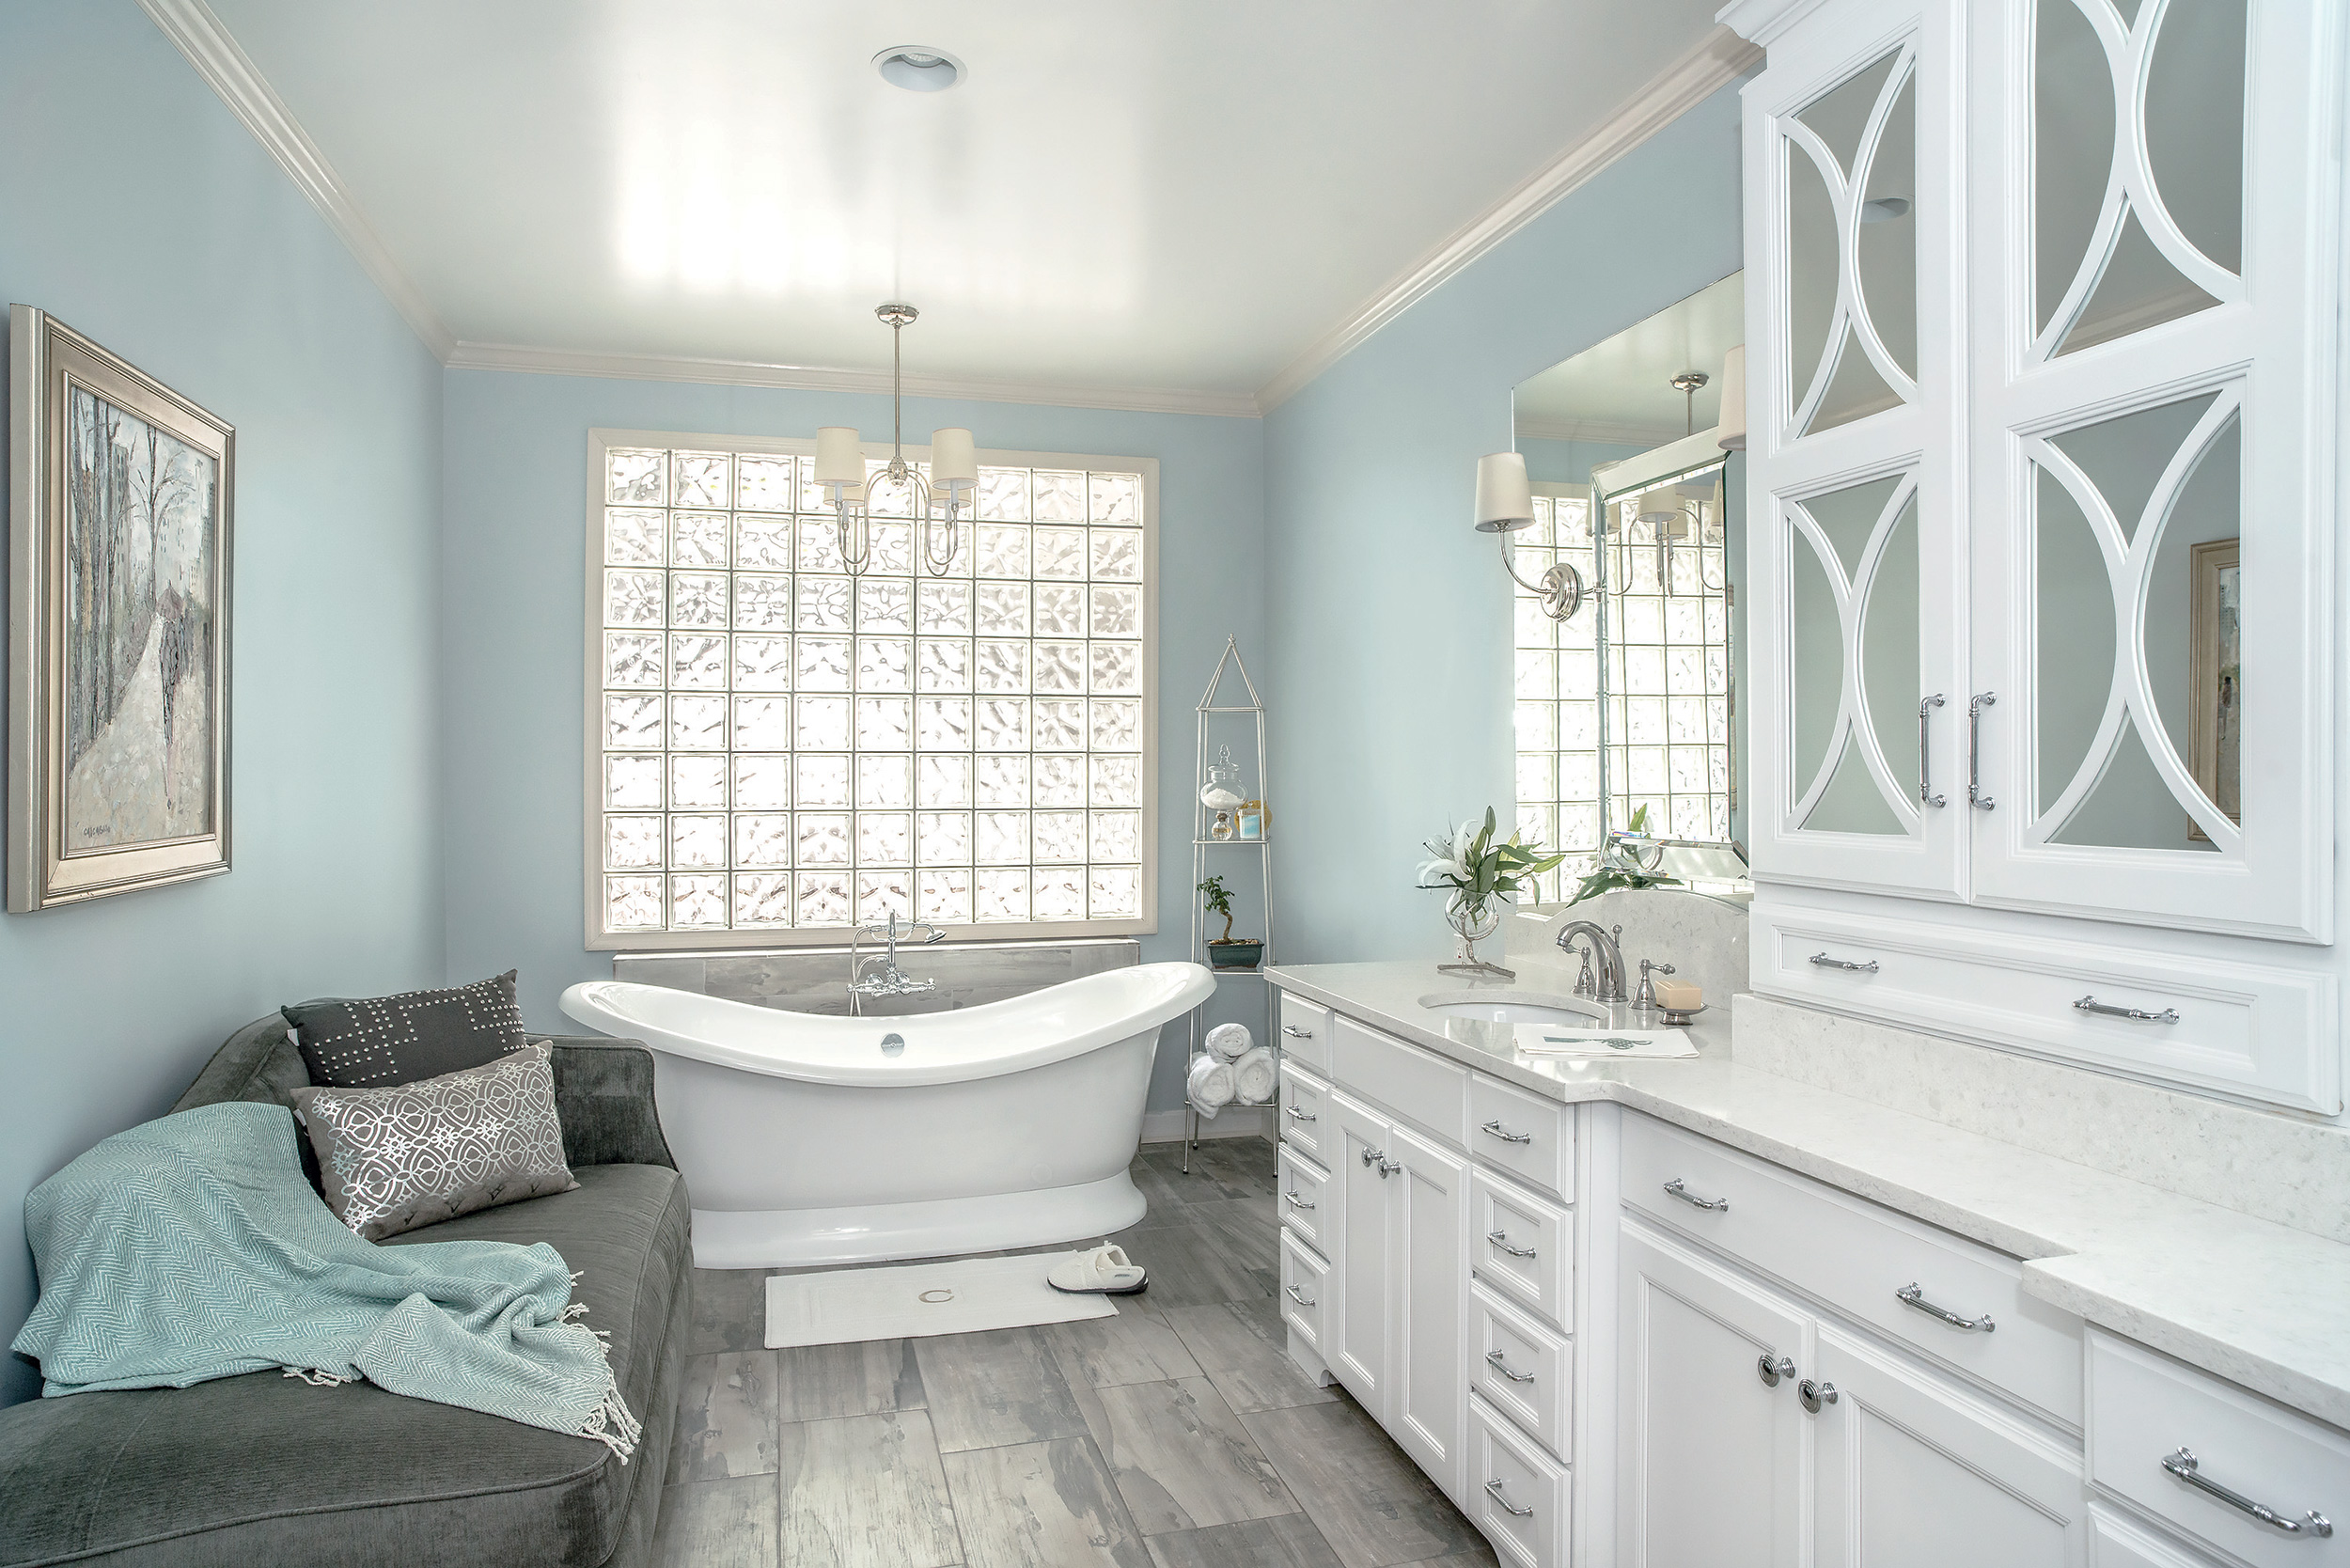 Bathroom trends for 2017 haskell 39 s blog for Bathroom remodel trends